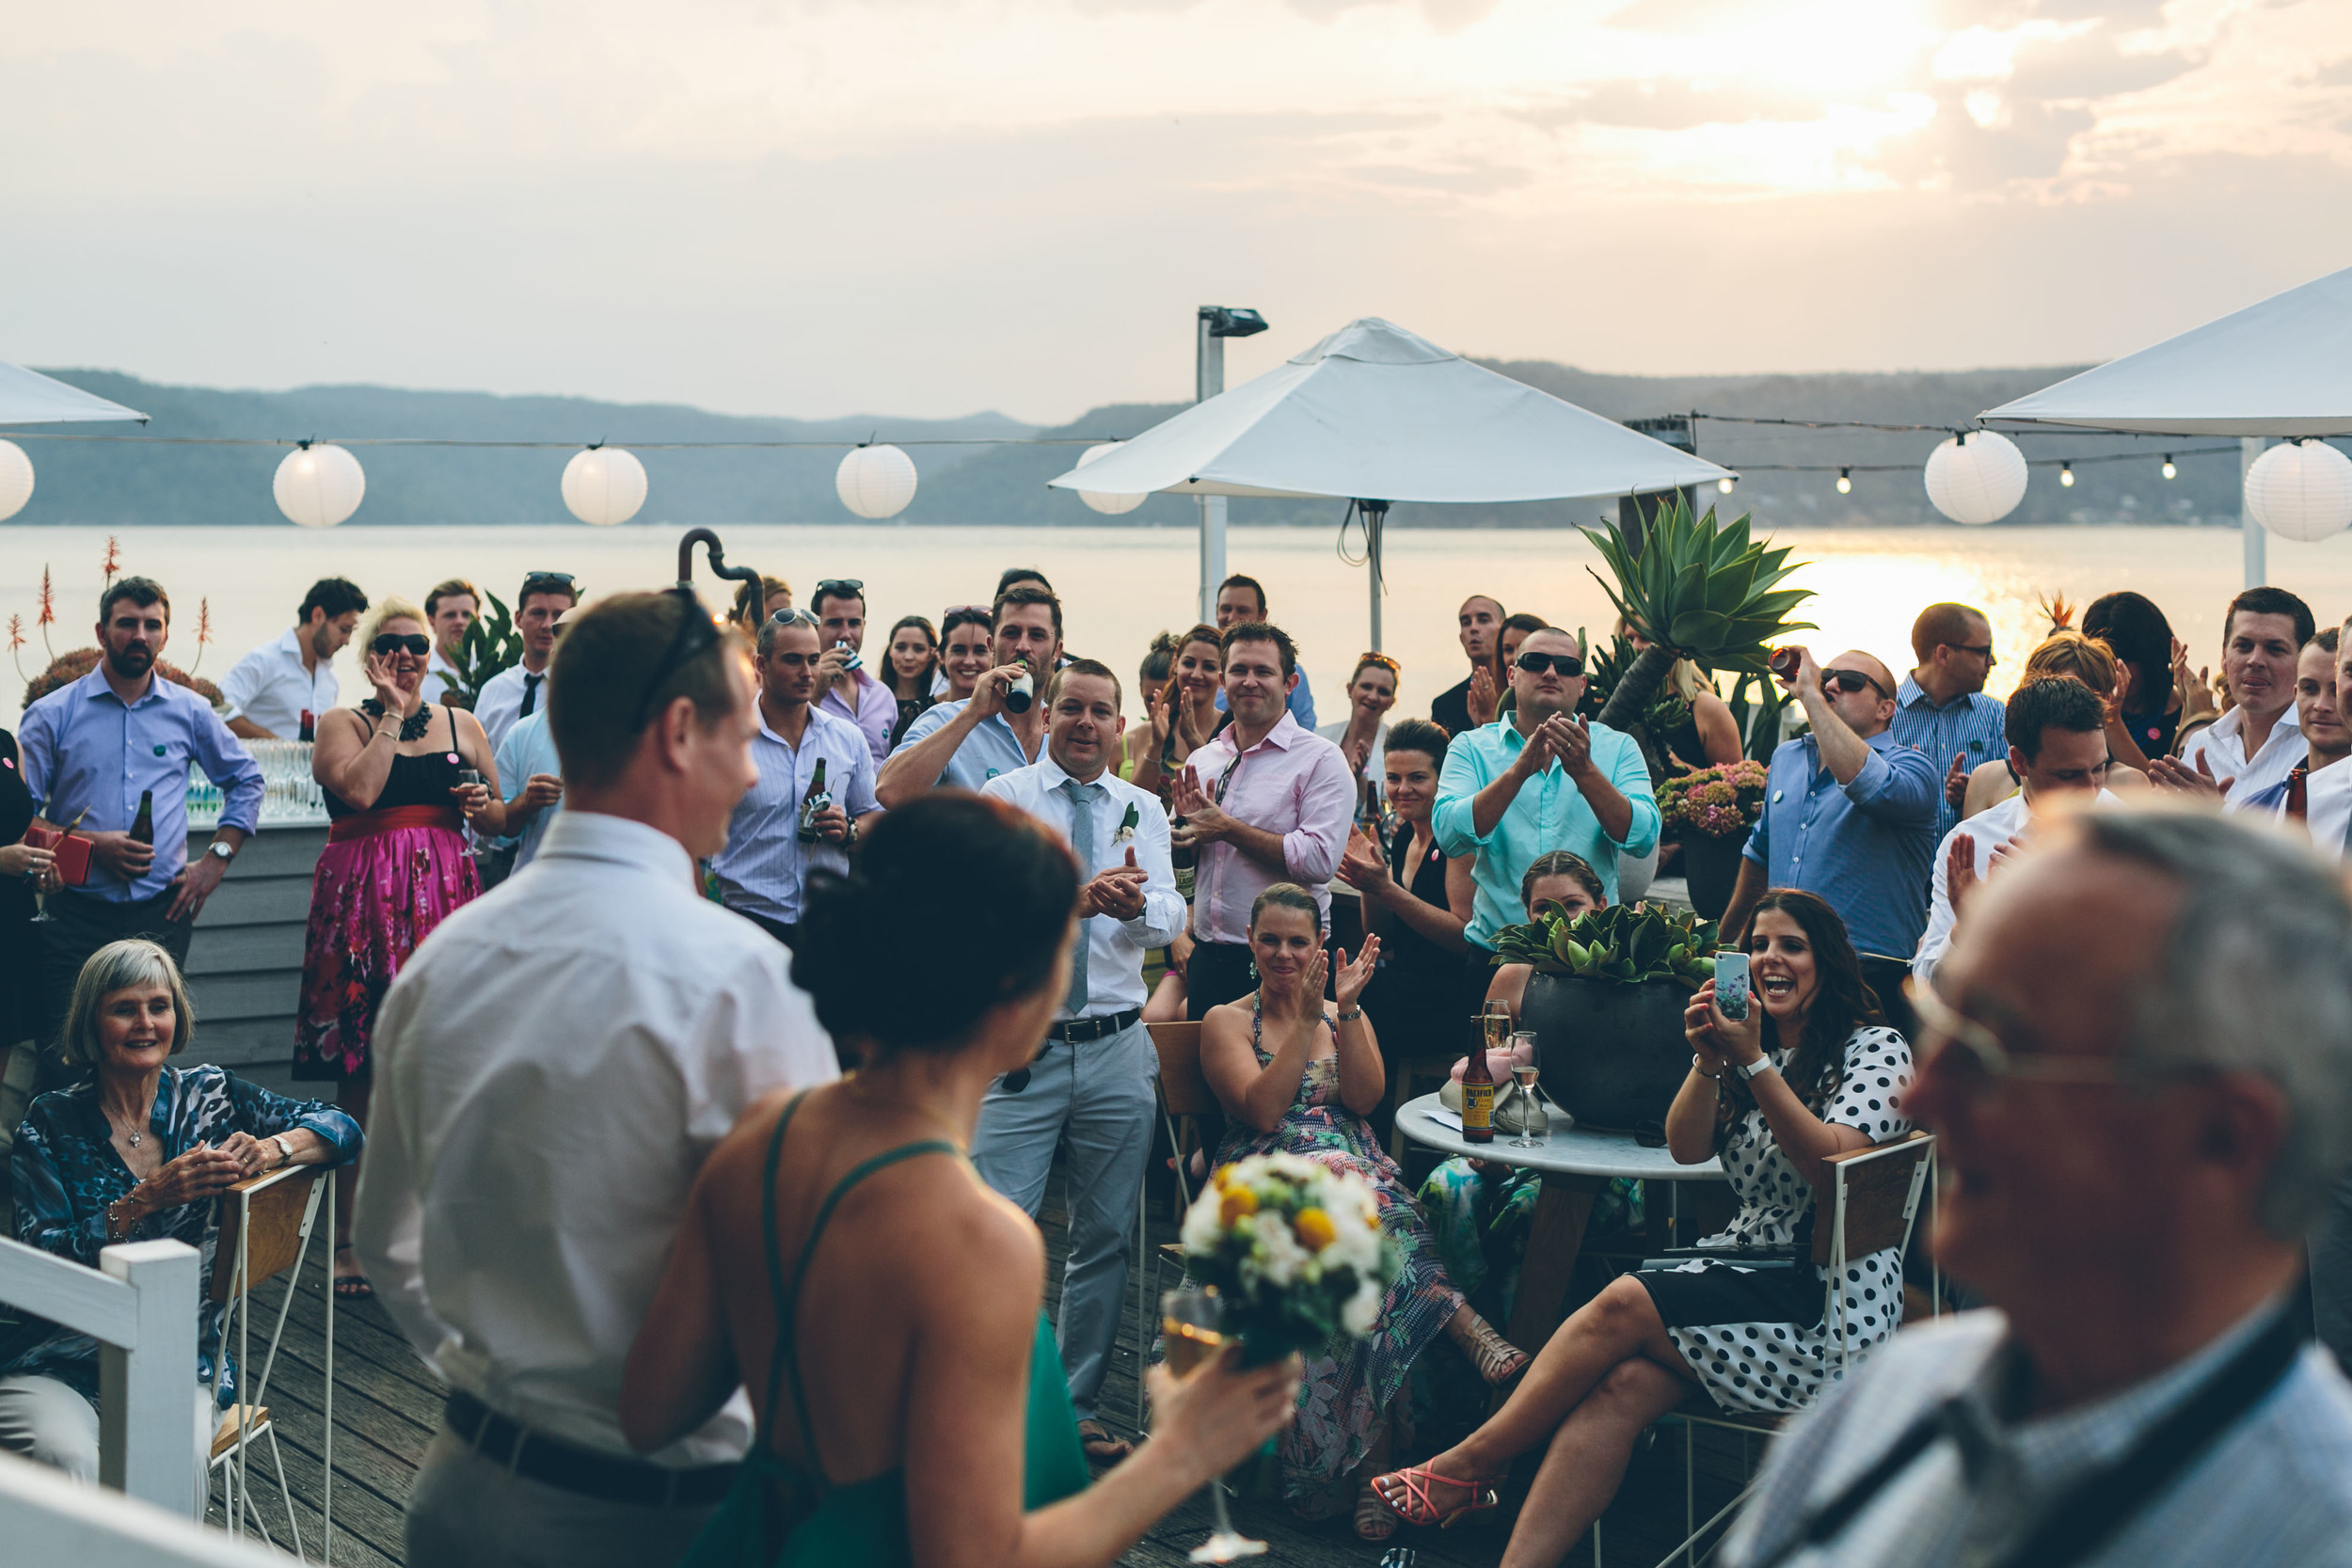 Maddy and Dan wedding, The Boathouse Palm Beach by Milton Gan Photography 109.jpg